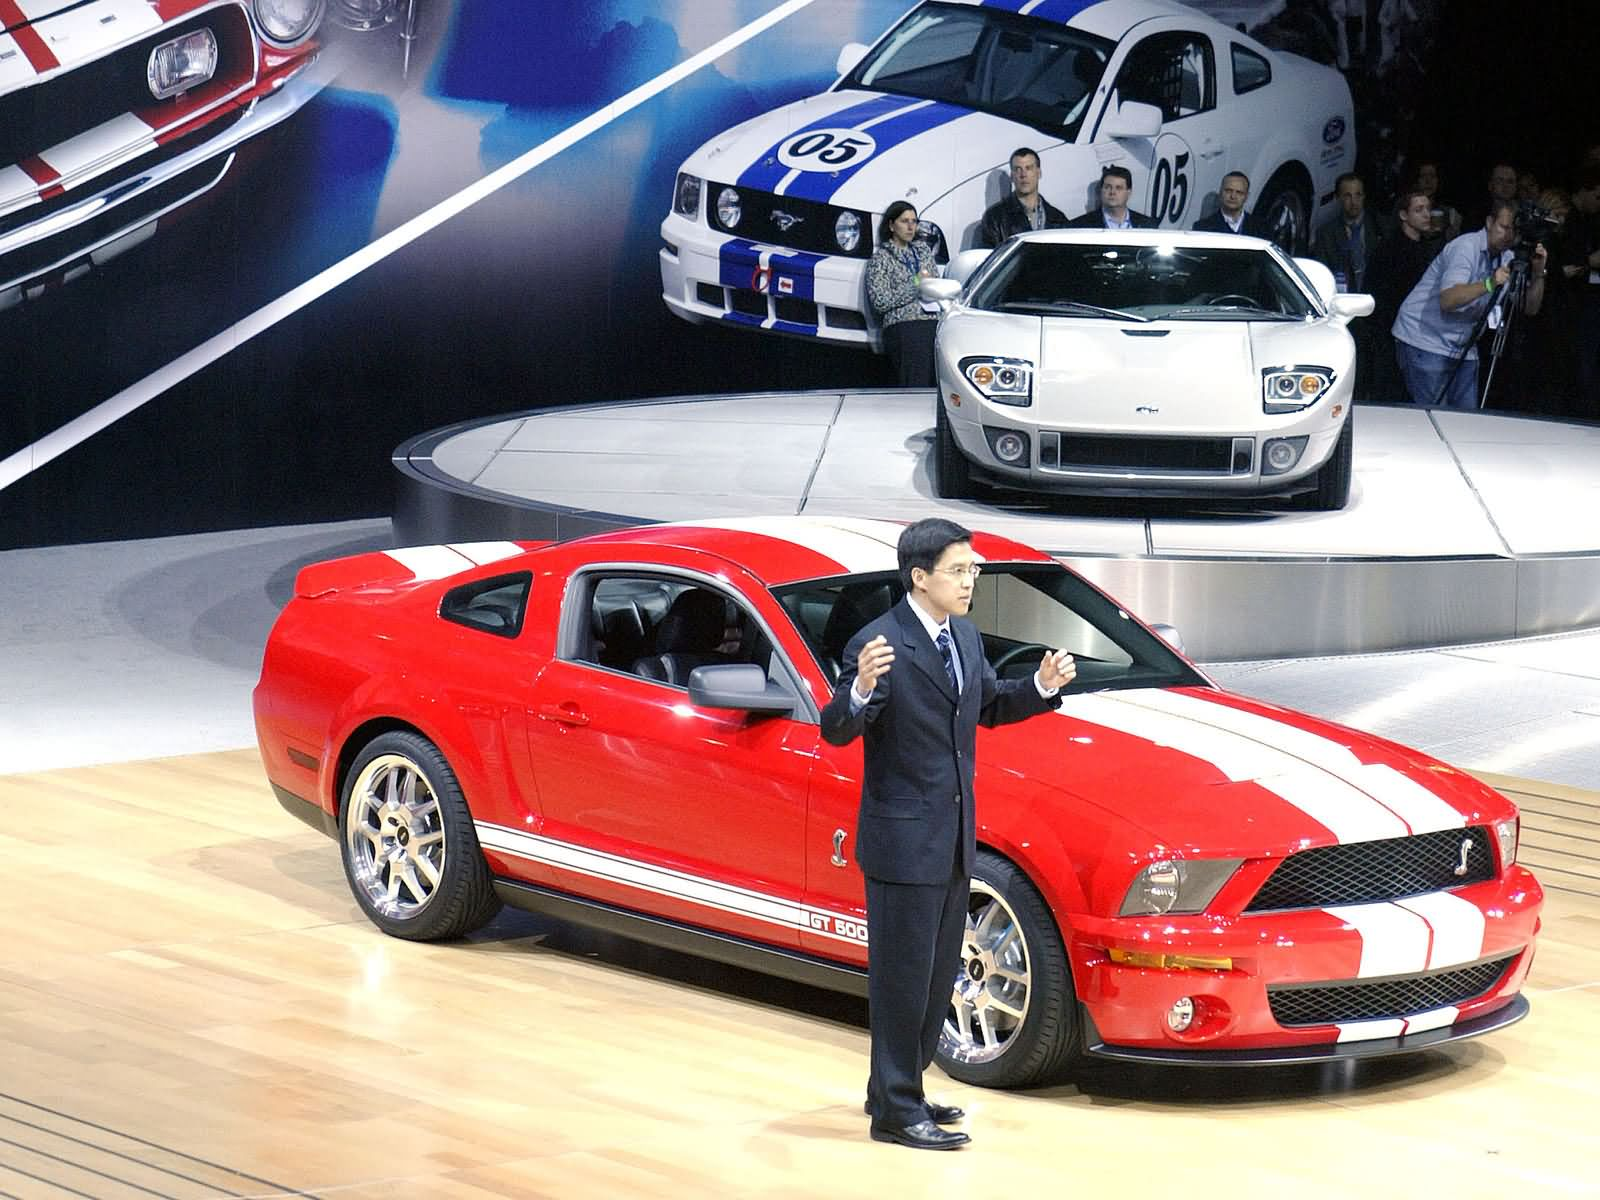 Ford shelby svt cobra gt500 mustang show car 2005 next hottest